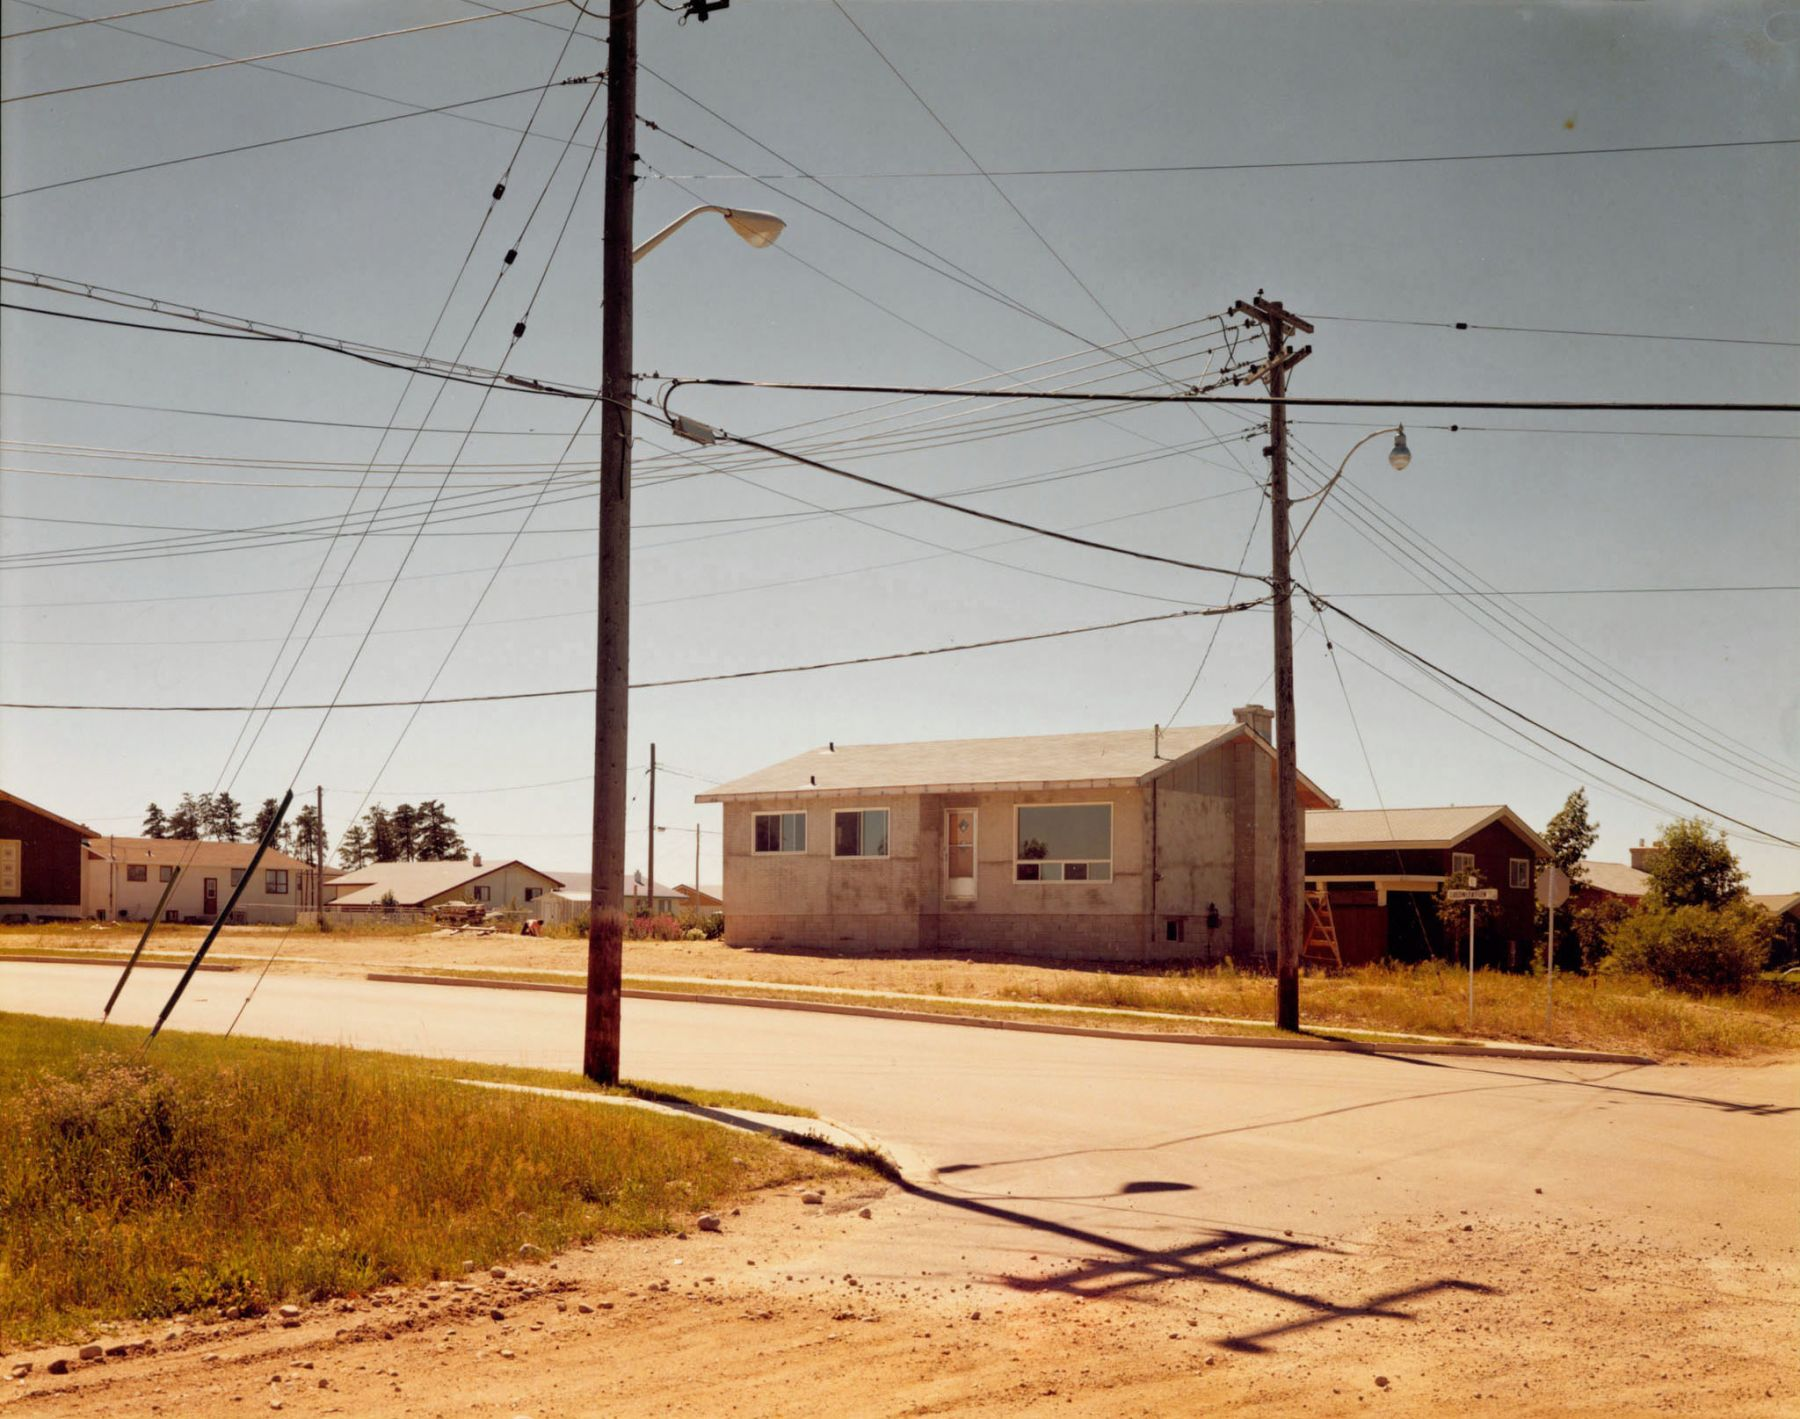 Wilde Street and Colonization Avenue, Dryden, Ontario, August 15, 1974